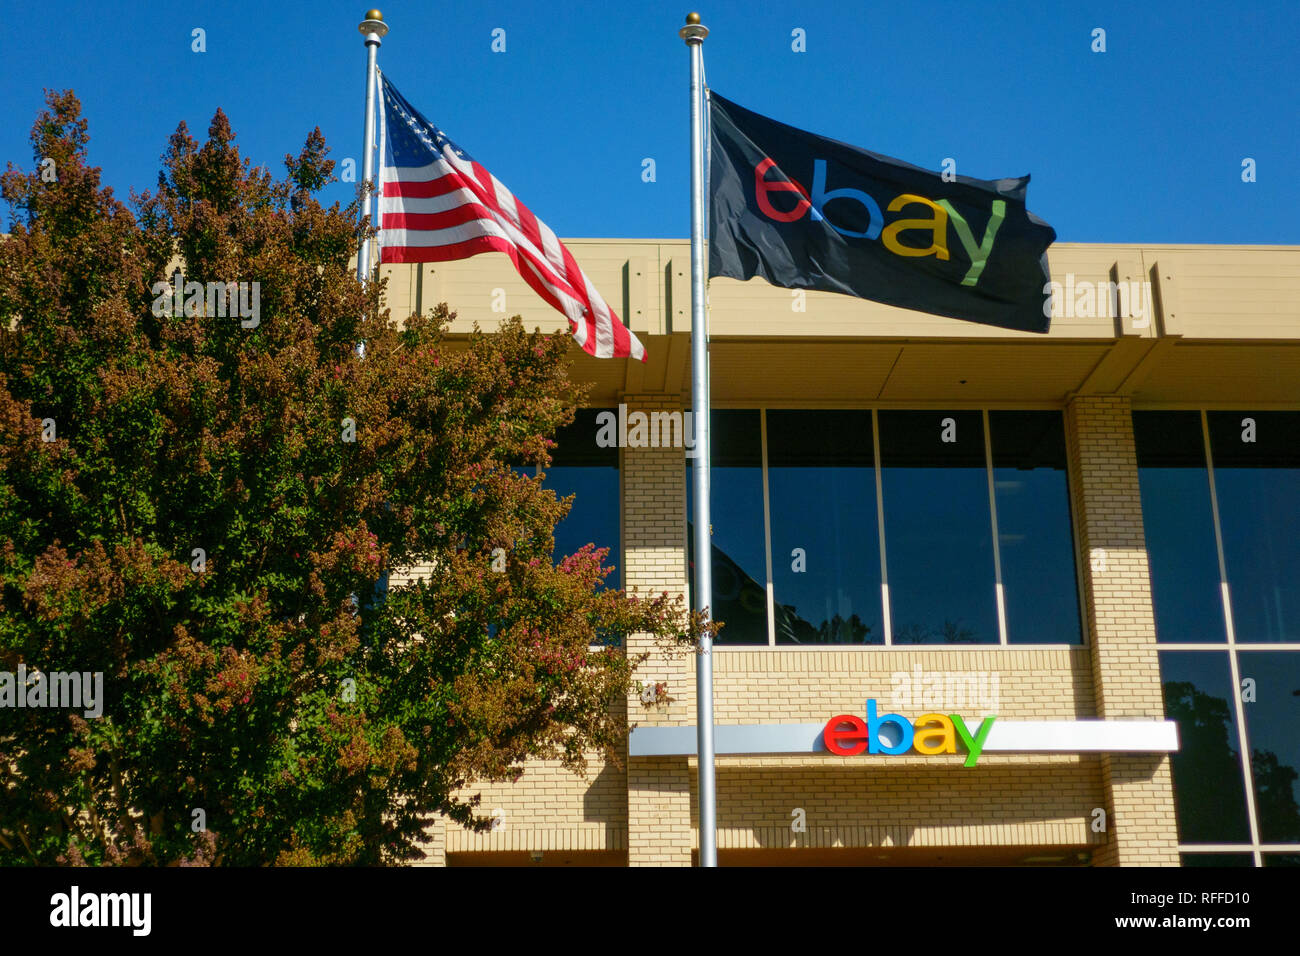 Ebay Company Headquarters In Silicone Valley Outdoors Stock Photo 233294124 Alamy